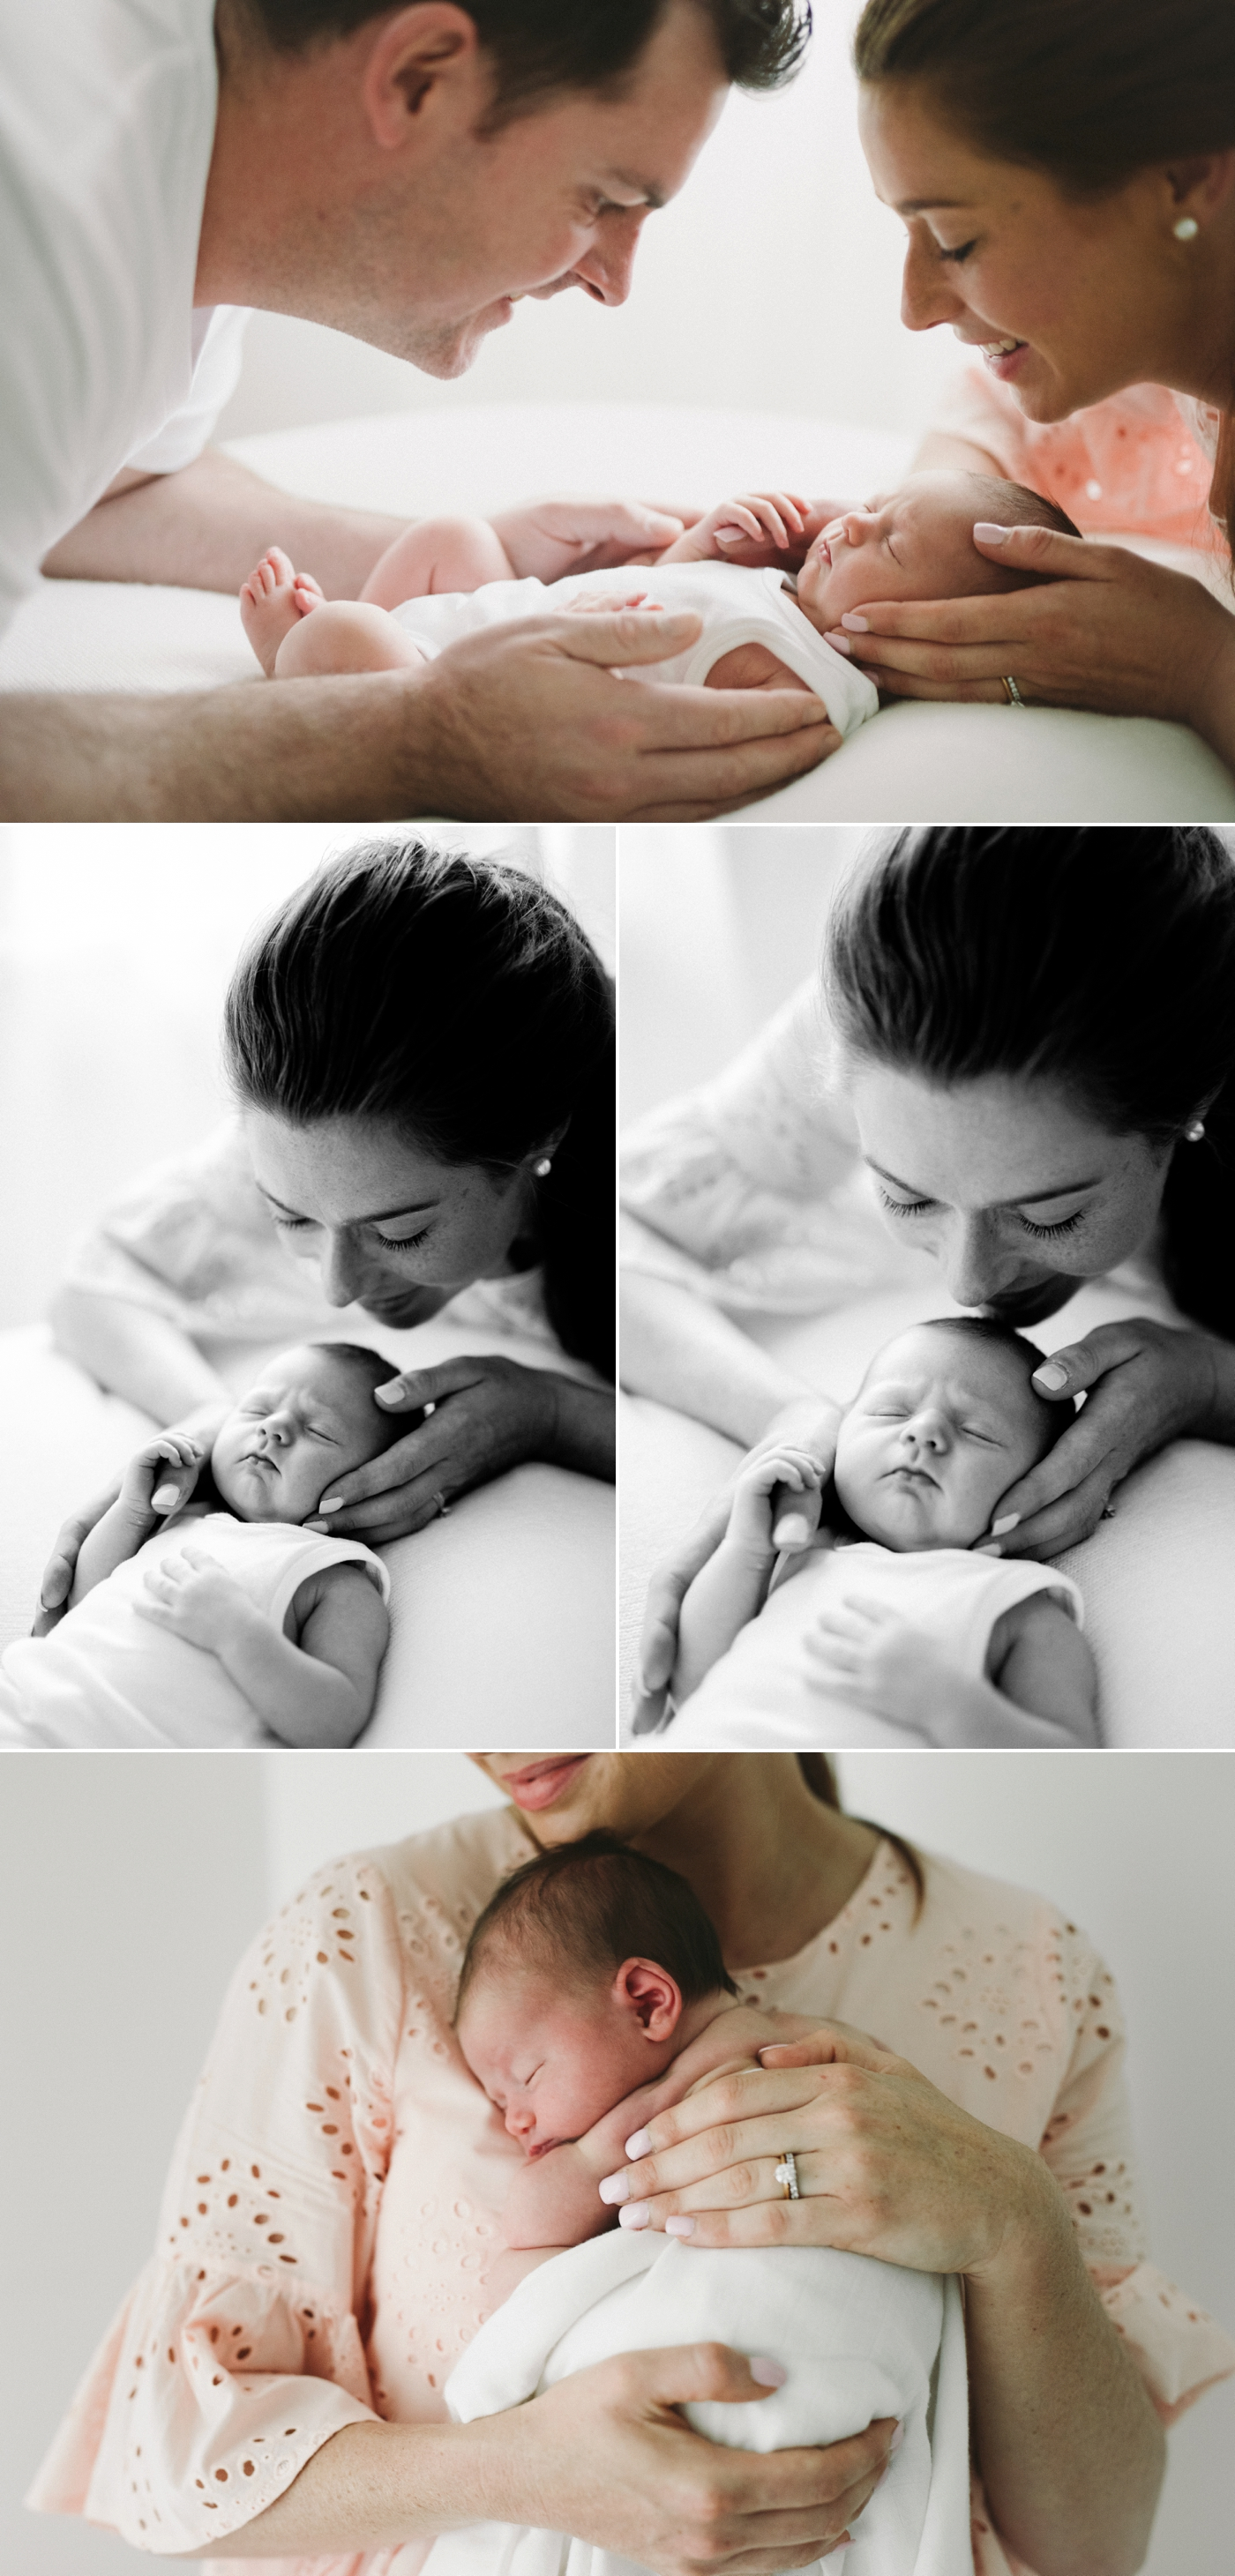 Baby Scarlett - Natural Newborn Photography in Adelaide - Simple and Beautiful Newborn Photographer - Katherine Schultz - www.katherineschultzphotography.com_0007.jpg